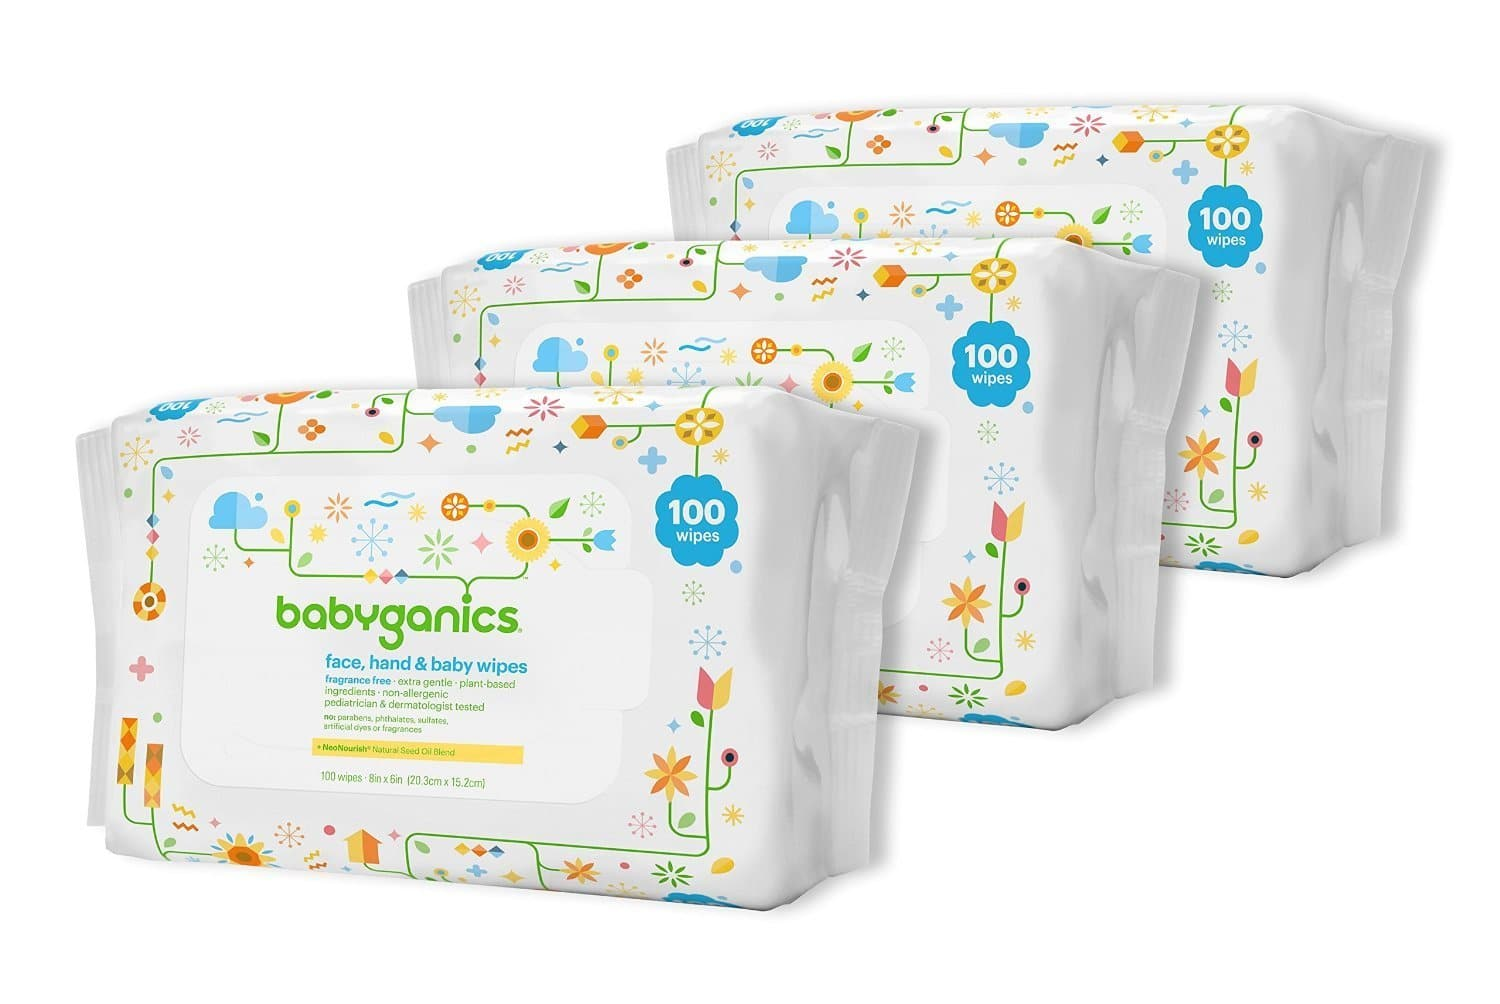 3-Pk 100-Ct Babyganics Face, Hand & Baby Wipes  $8.30 & More + Free S&H